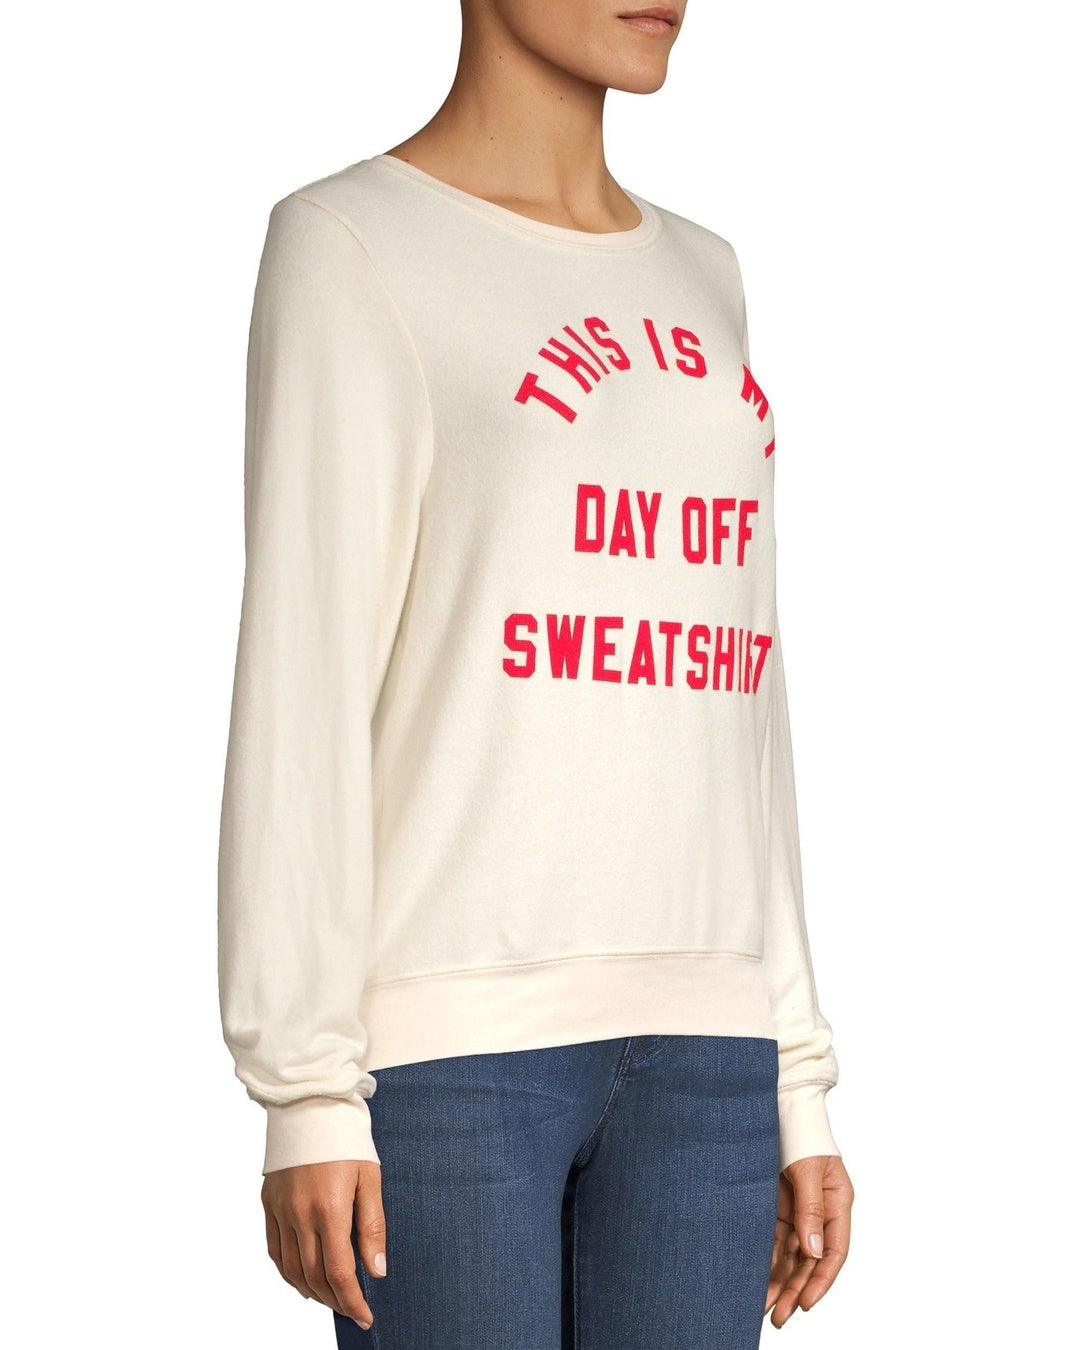 Wildfox Christmas Sweater.This Is My Day Off Sweatshirt